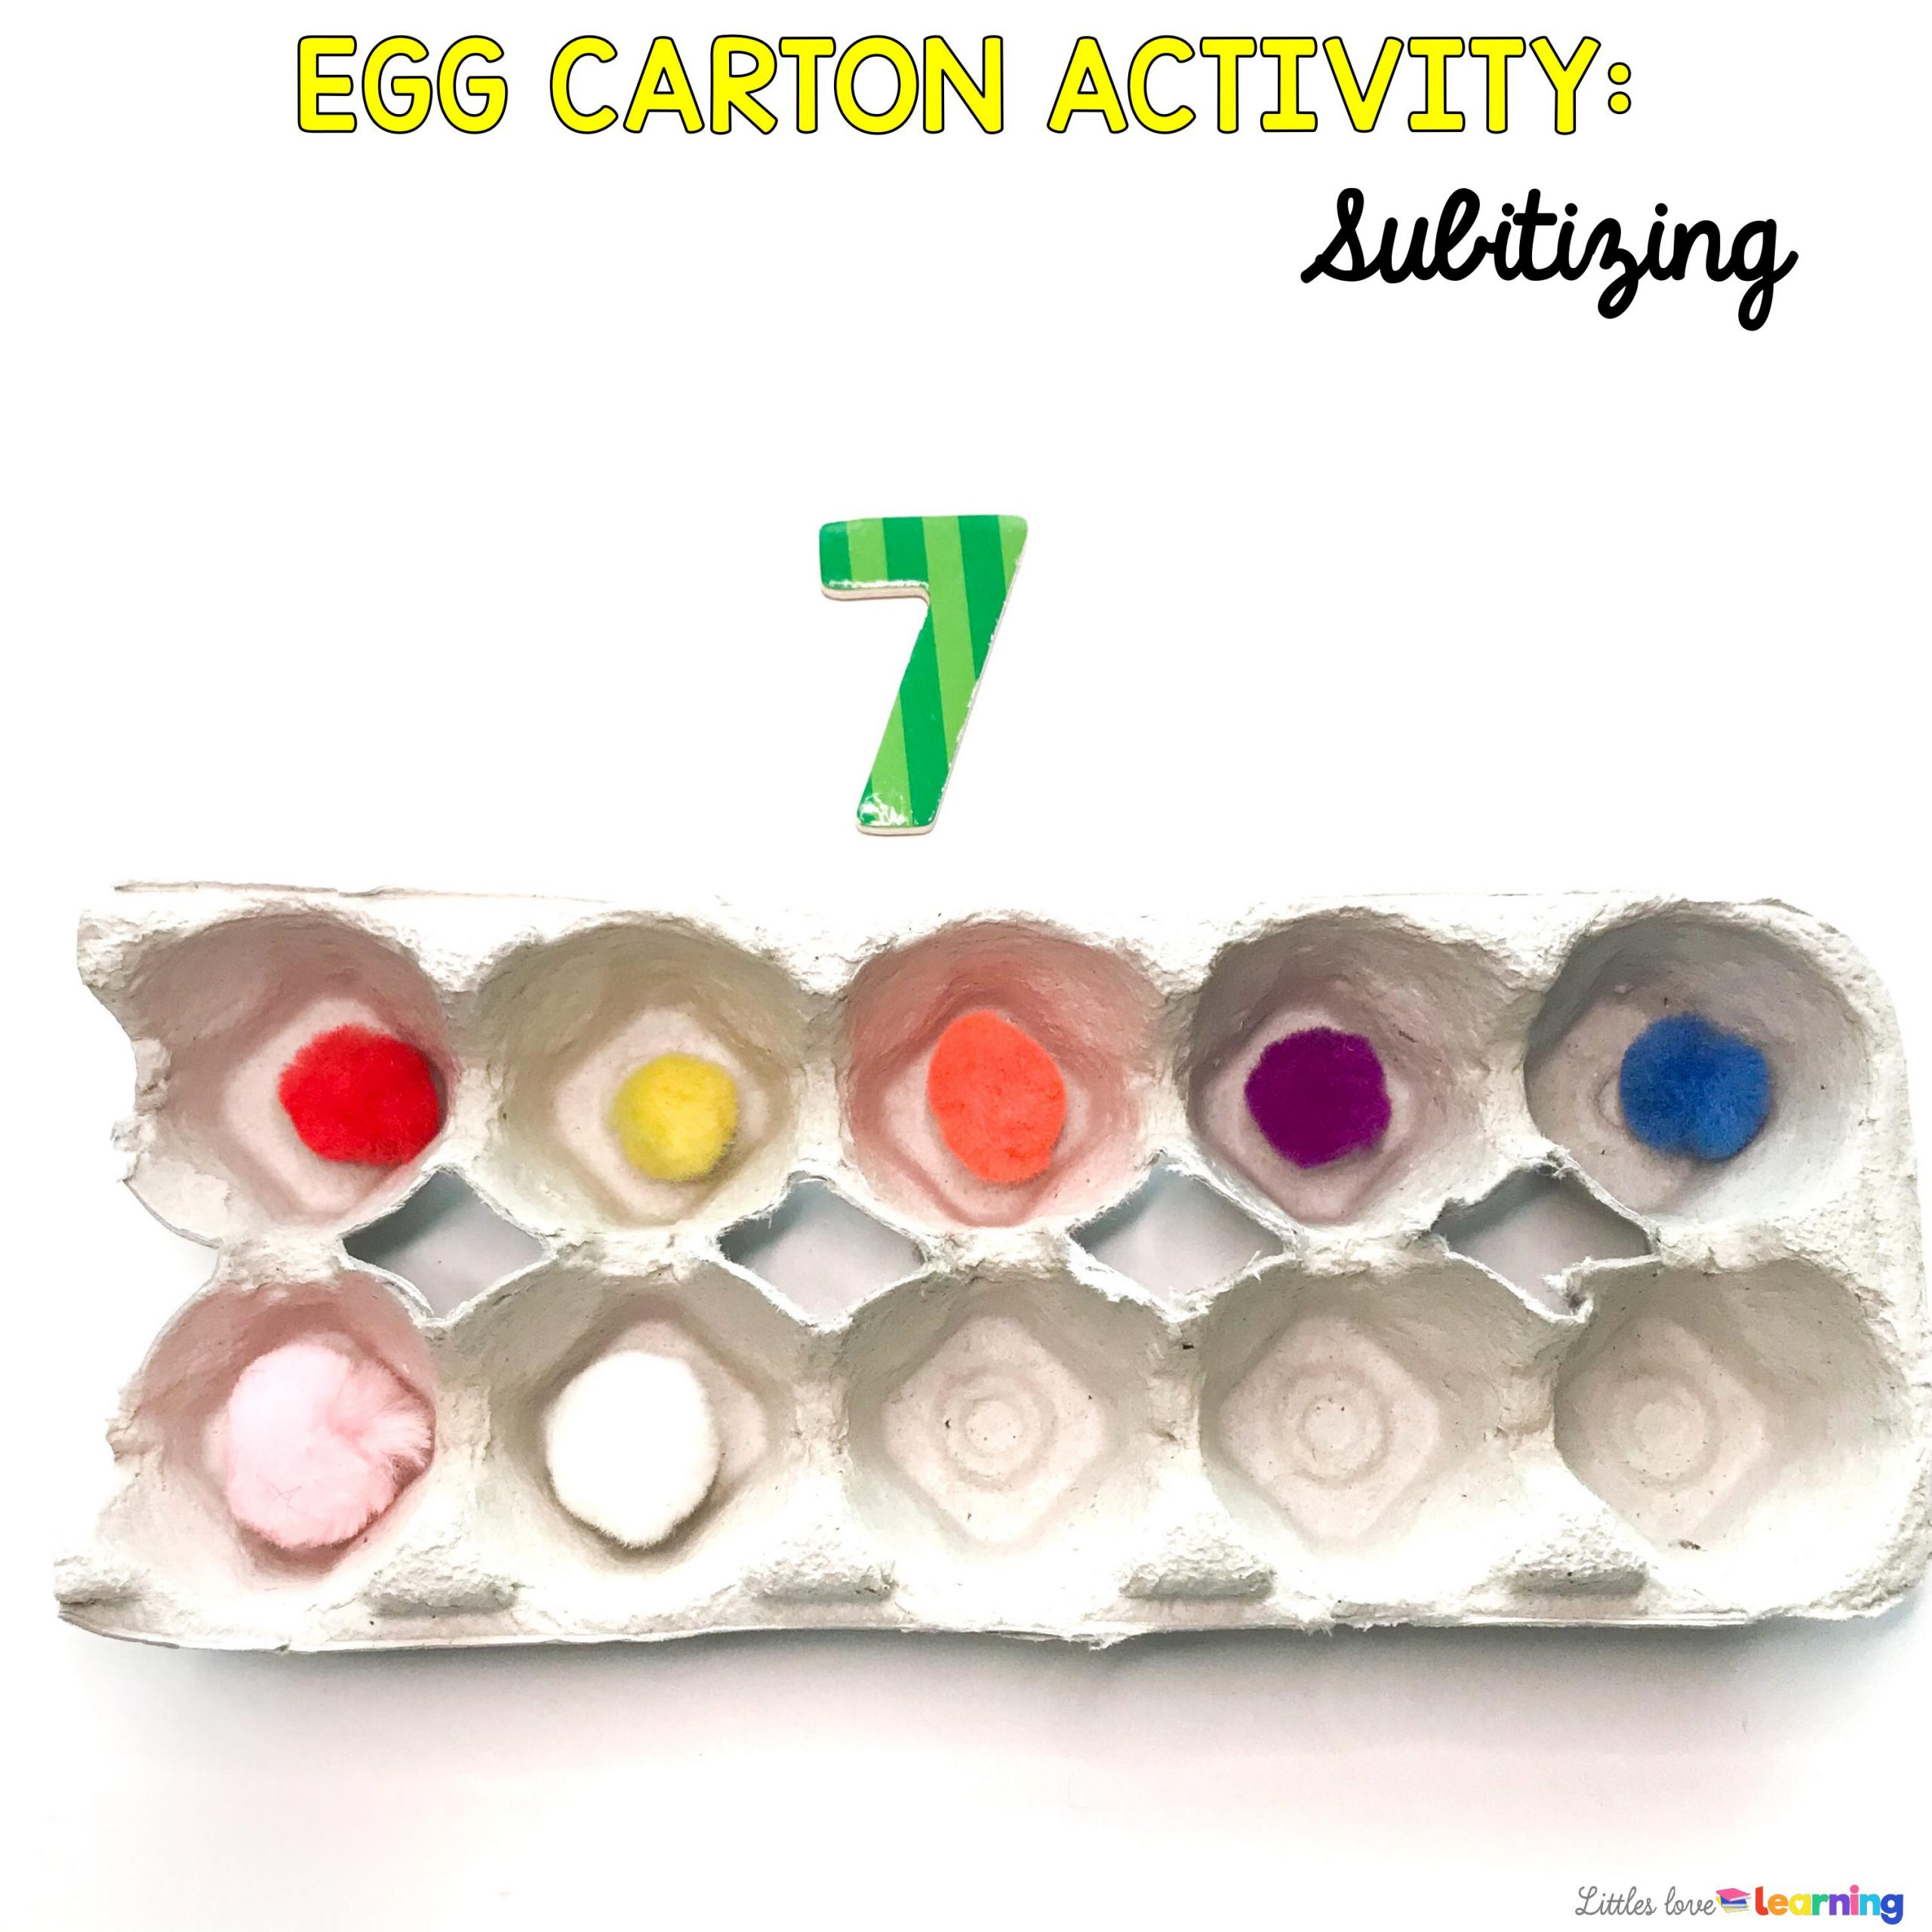 egg carton with number 7 and seven pom moms in the egg carton text reads egg carton activity: subtilizing